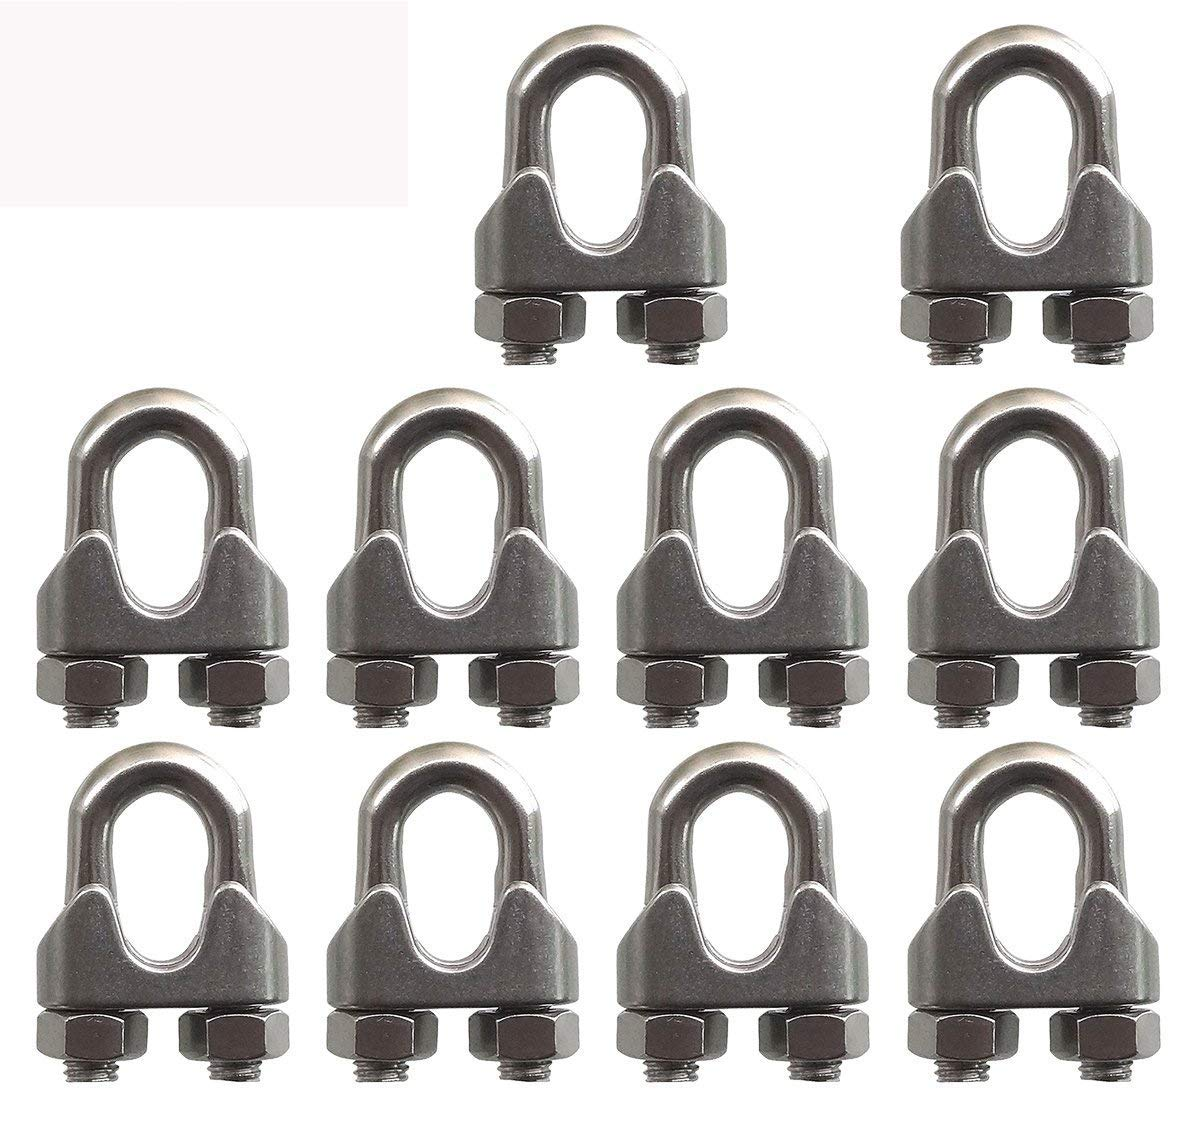 SKKXY 10Pcs M10 Stainless Steel 3/8'/9.5mm Steel Wire Rope Clip Cable Clamp U Bolt Saddle Fastener